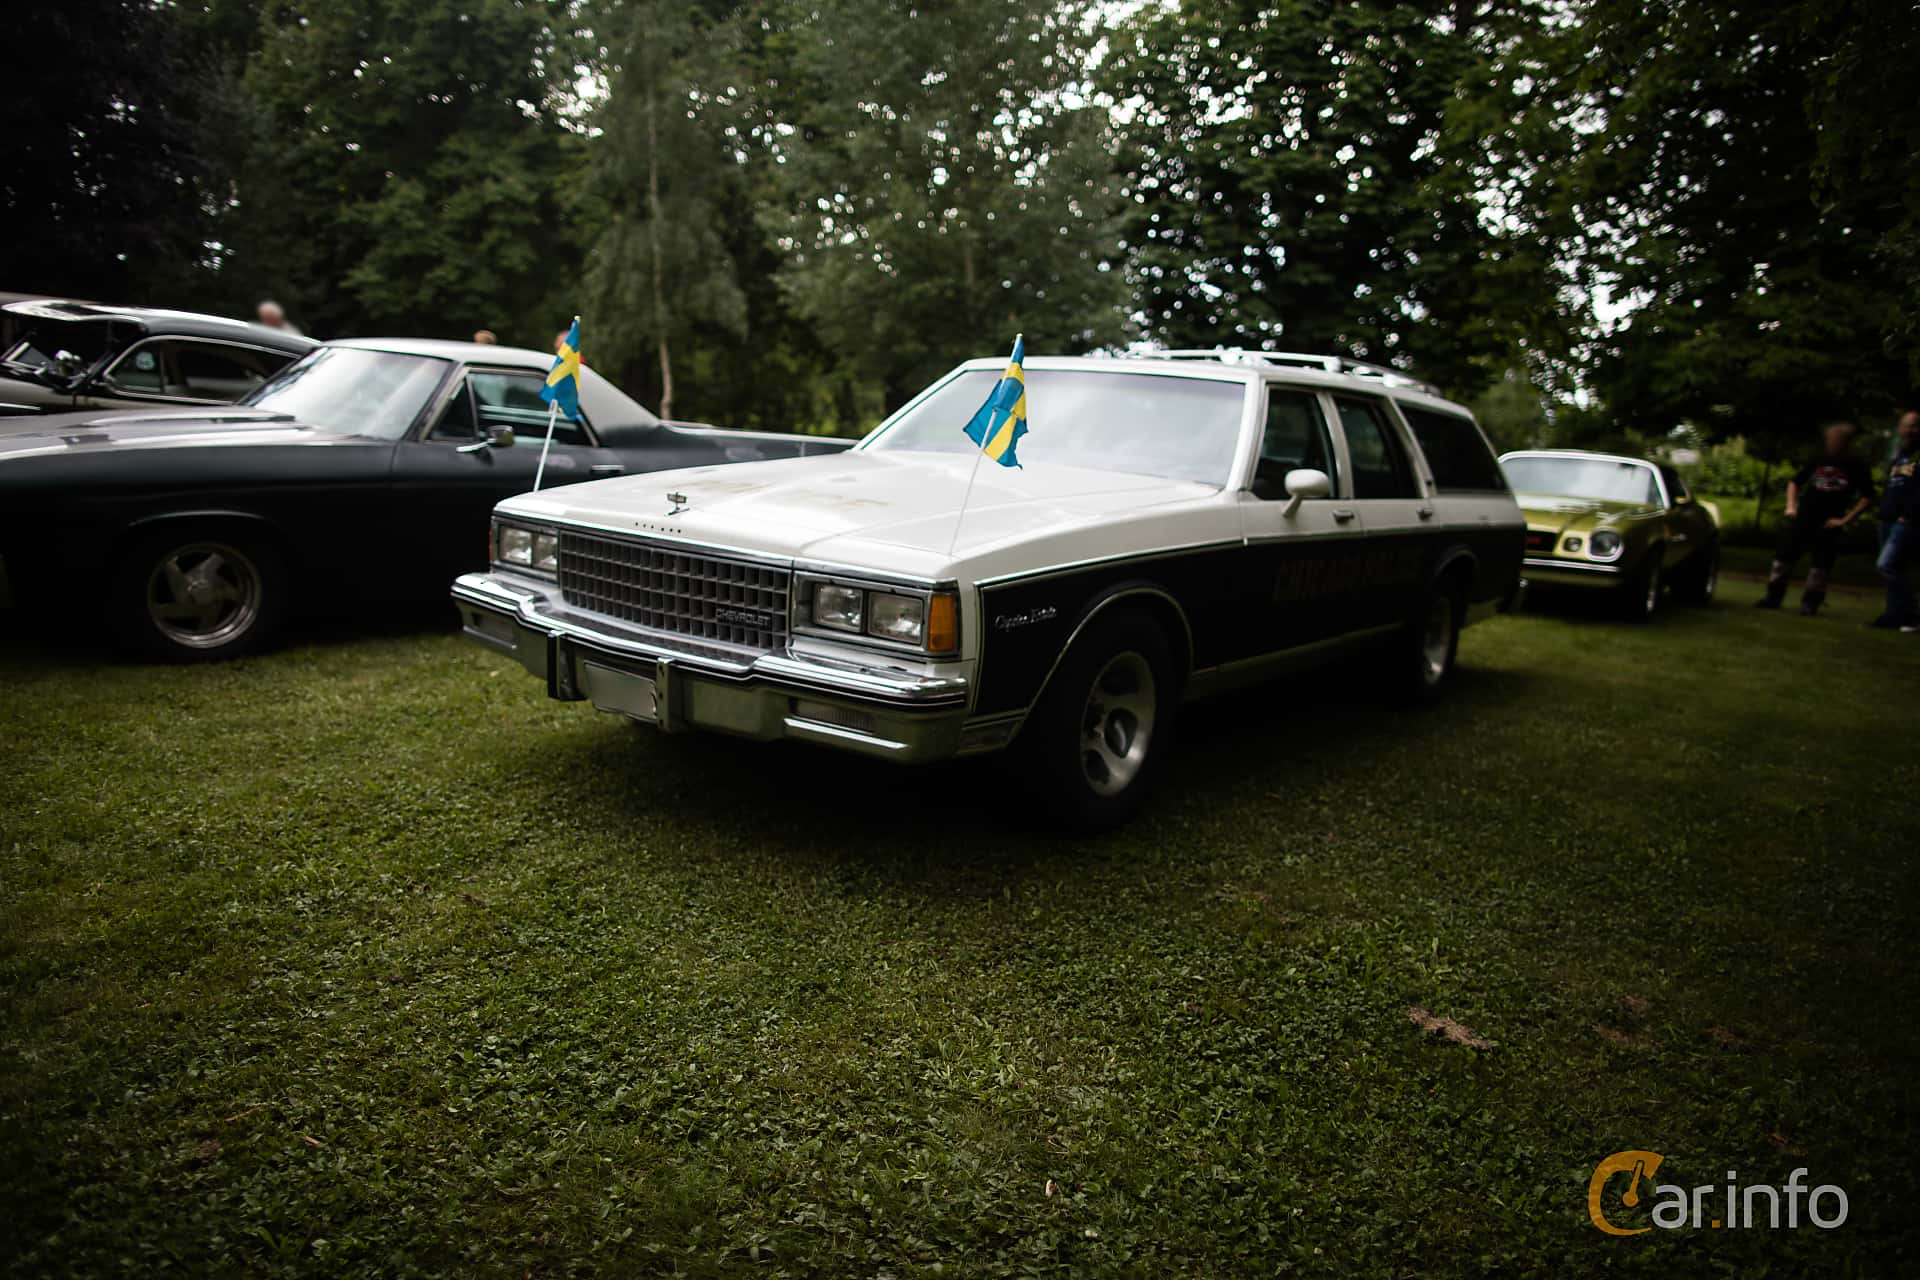 5 Images Of Chevrolet Caprice 2 Seat Station Wagon 57 V8 Automatic 1980 Ford Crown Victoria Front Side 106ps